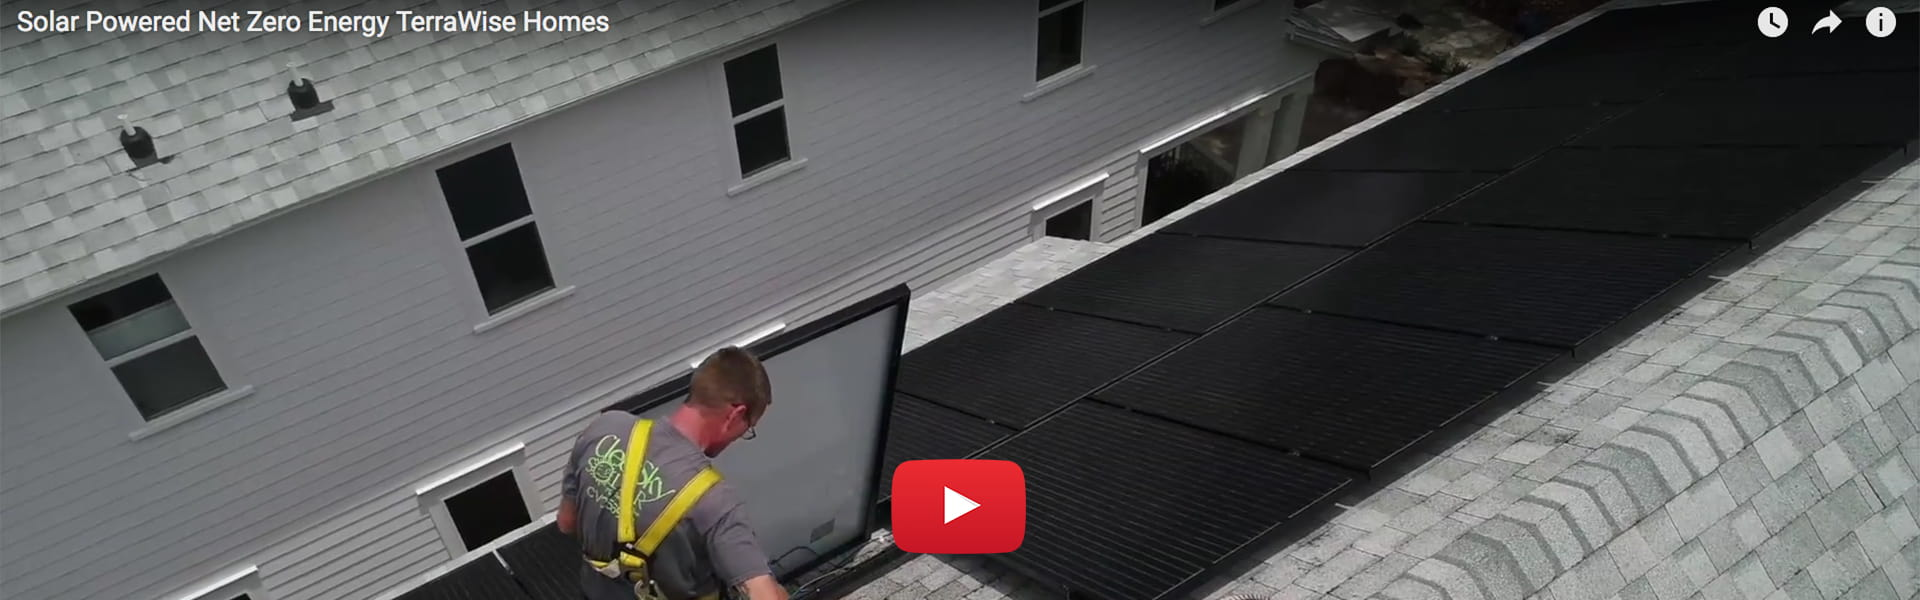 Watch video to learn how Solar Powered Homes work.